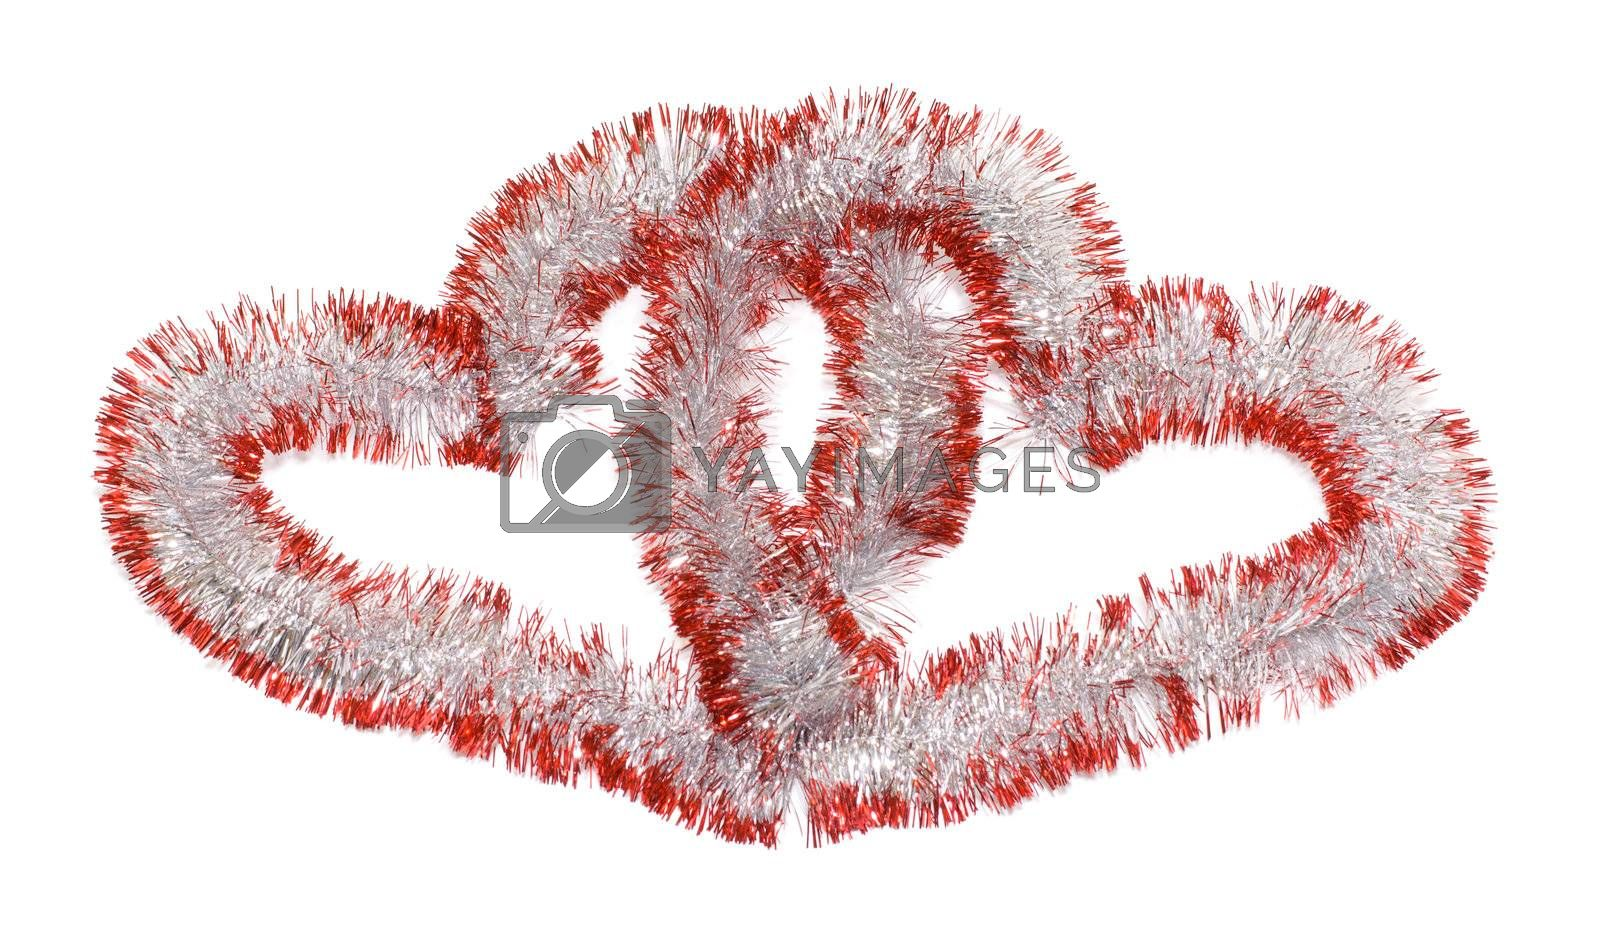 Christmas-tree ornaments for holiday lovers. On a white background.